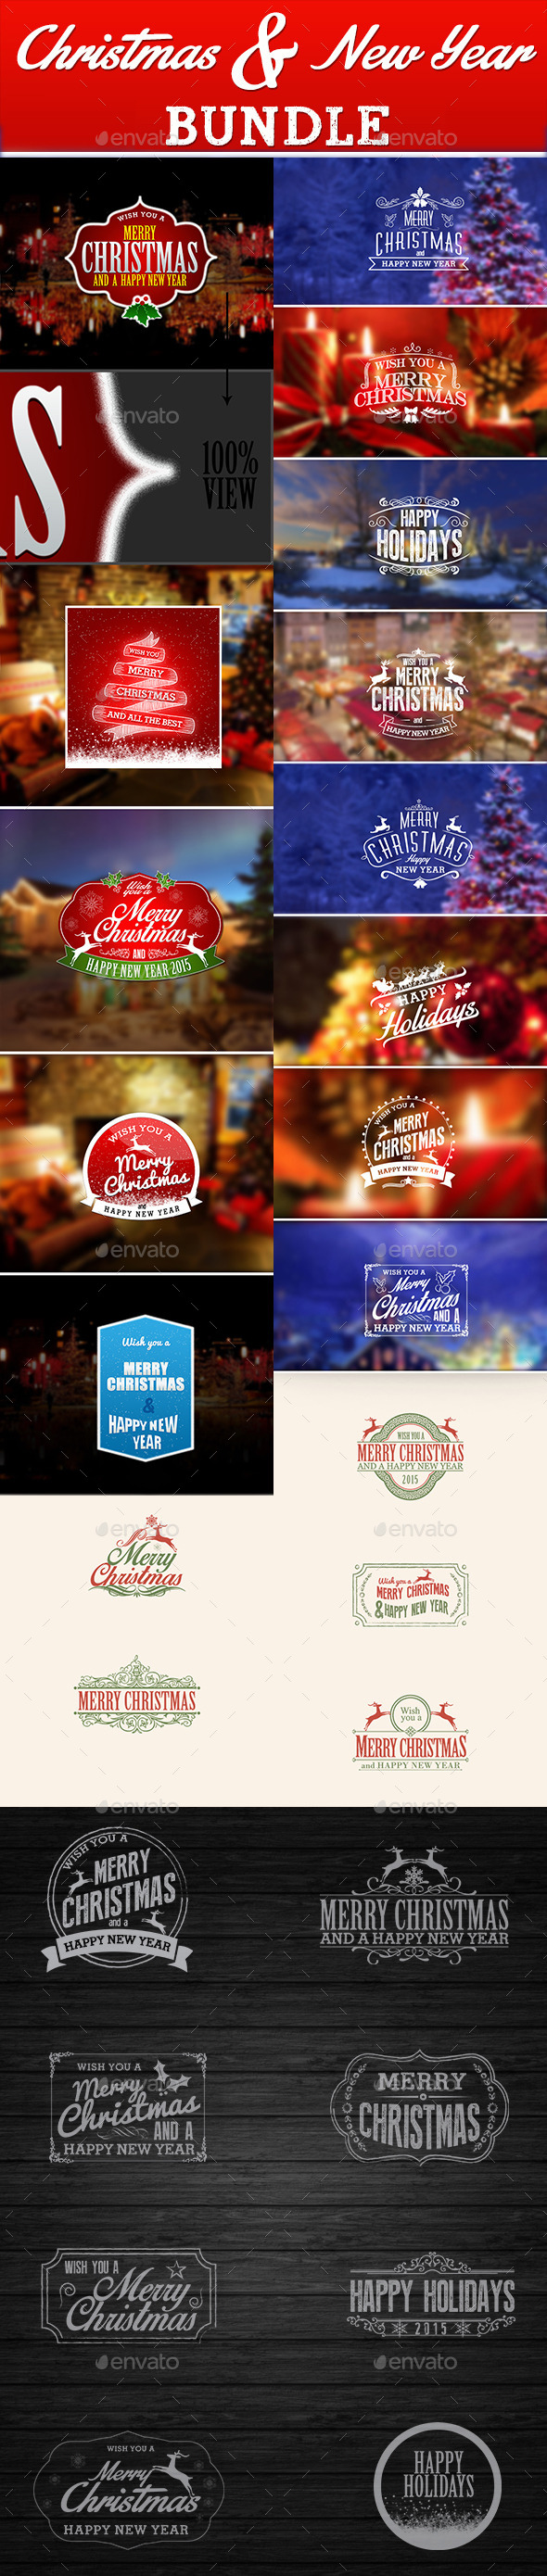 GraphicRiver Christmas and New Year Bundle 9559600